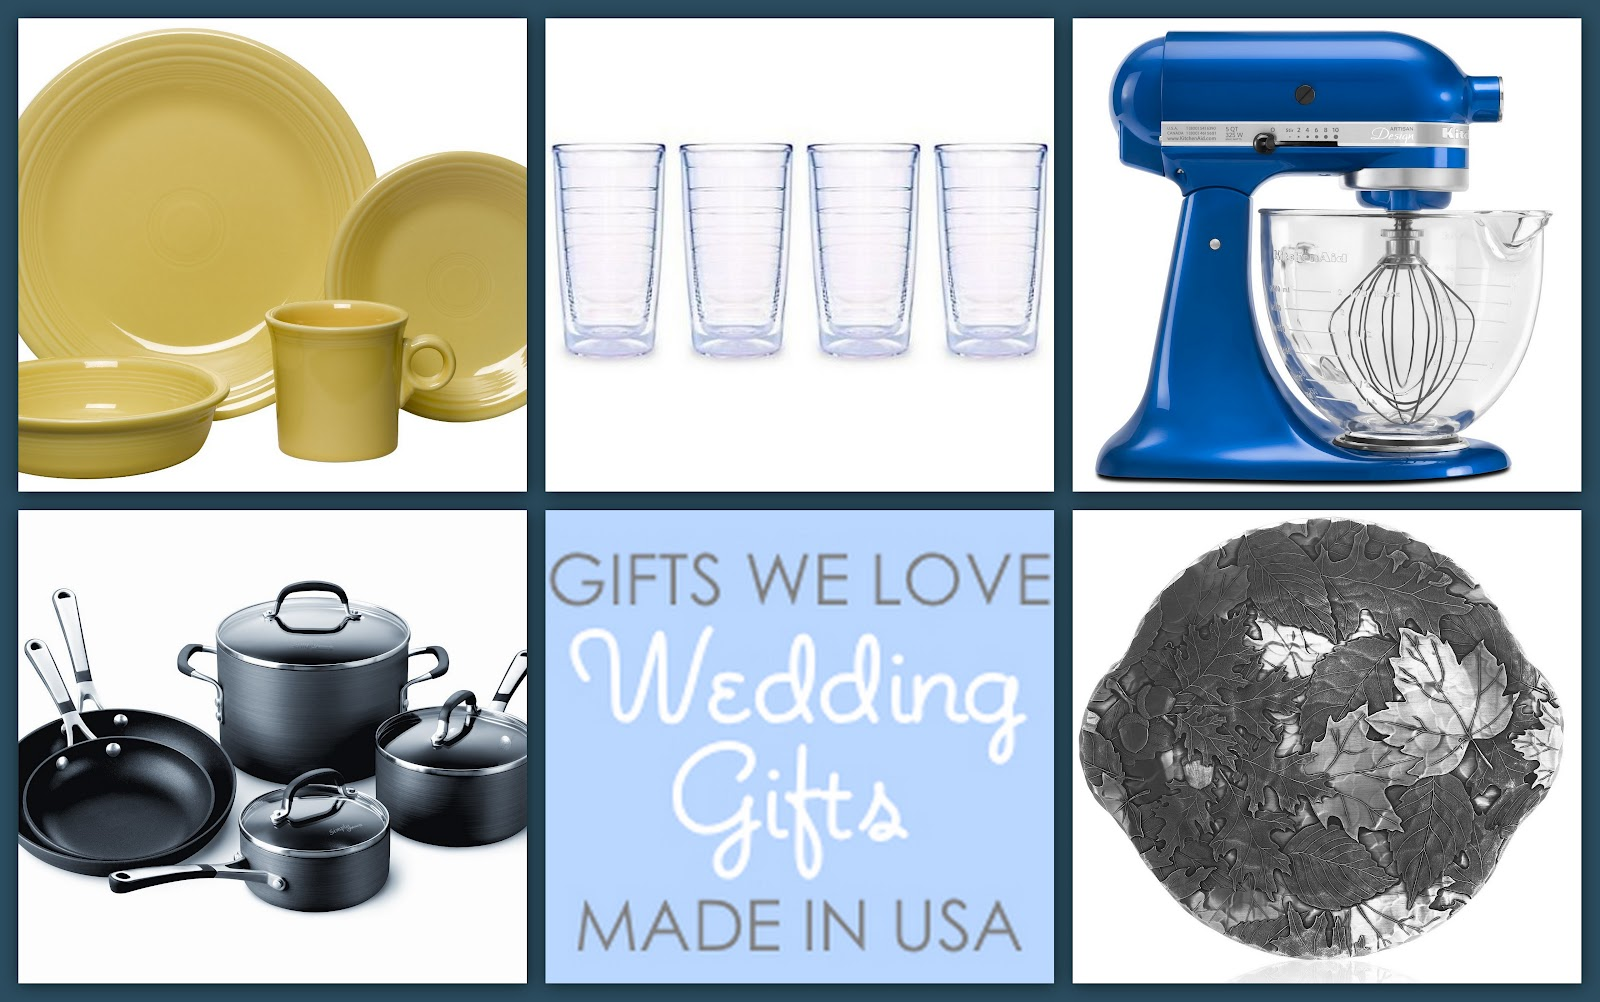 Wedding Gifts We Love, Made in the USA - USA Love List